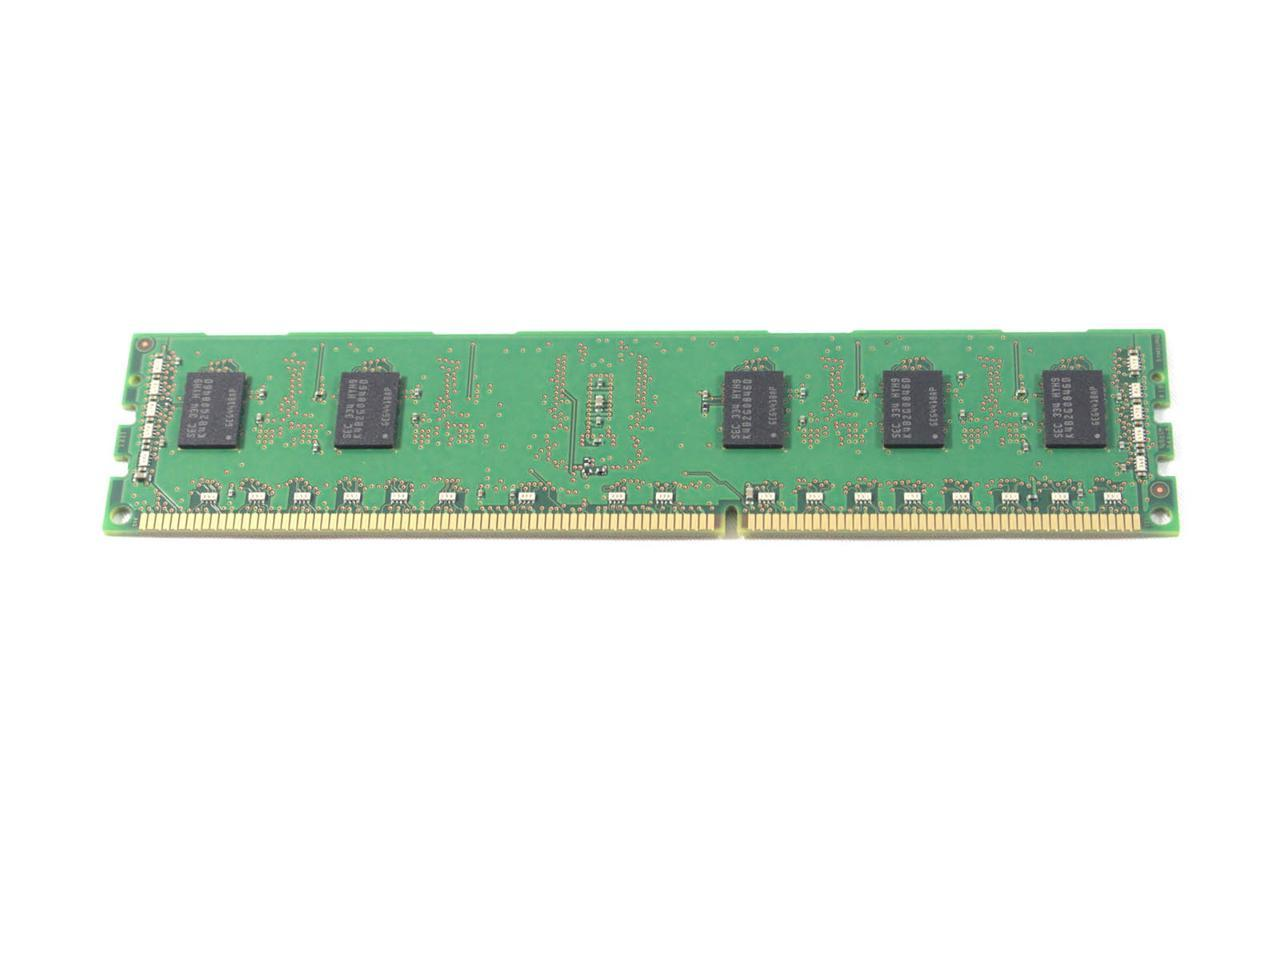 parts-quick 8GB Memory for Intel W2600CR2 W2600CR2L Workstation DDR3 1333MHz PC3-10600 ECC Registered Server DIMM